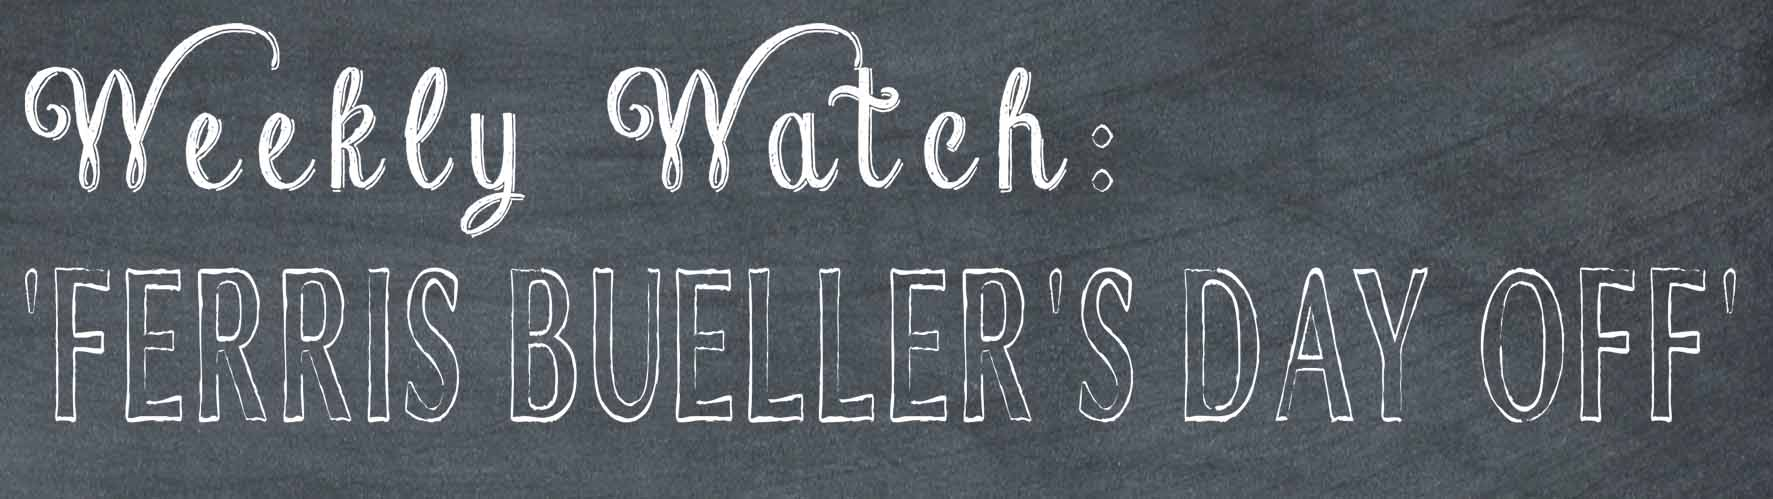 Weekly Watch WEB 1